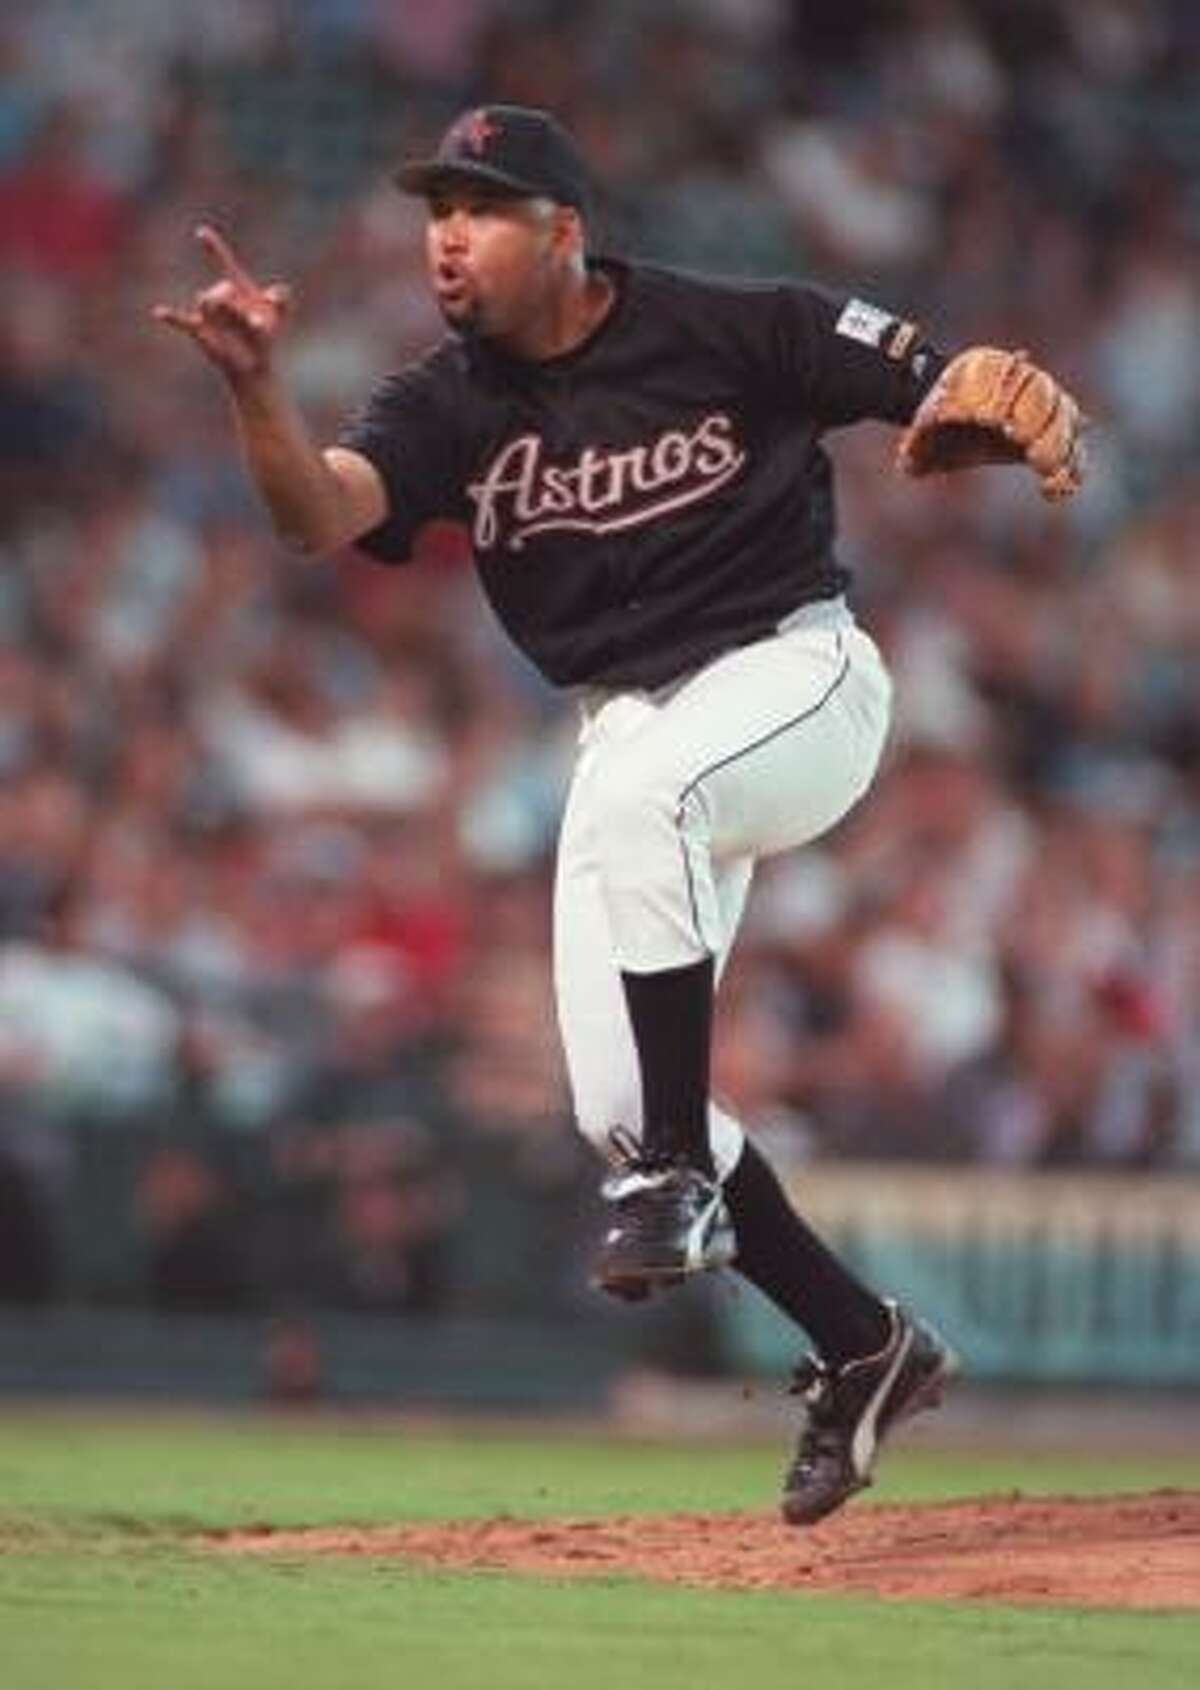 JOSE LIMA, 37 Colorful and popular Astros righthander had an All-Star year in 1999, going 21-10 with a 3.58 ERA and helping the Astros win a third consecutive NL Central title. Lima played 13 seasons in the big leagues, including with the Astros from 1997-2000. He died May 23, likely of heart failure